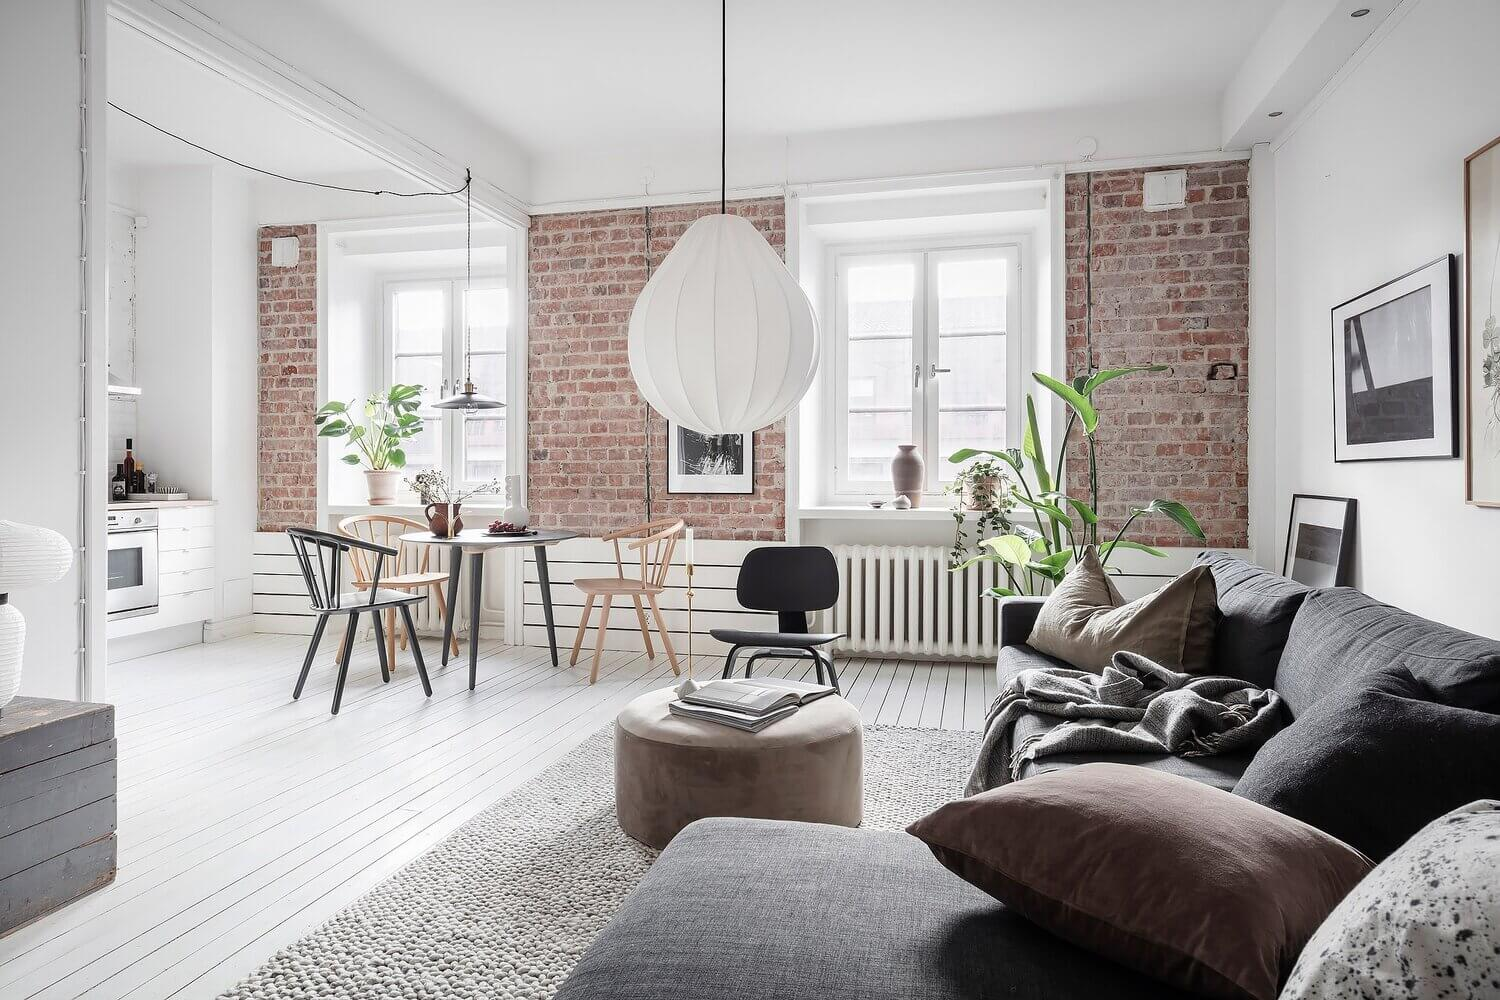 A Bright Scandinavian Apartment with Exposed Brick Walls